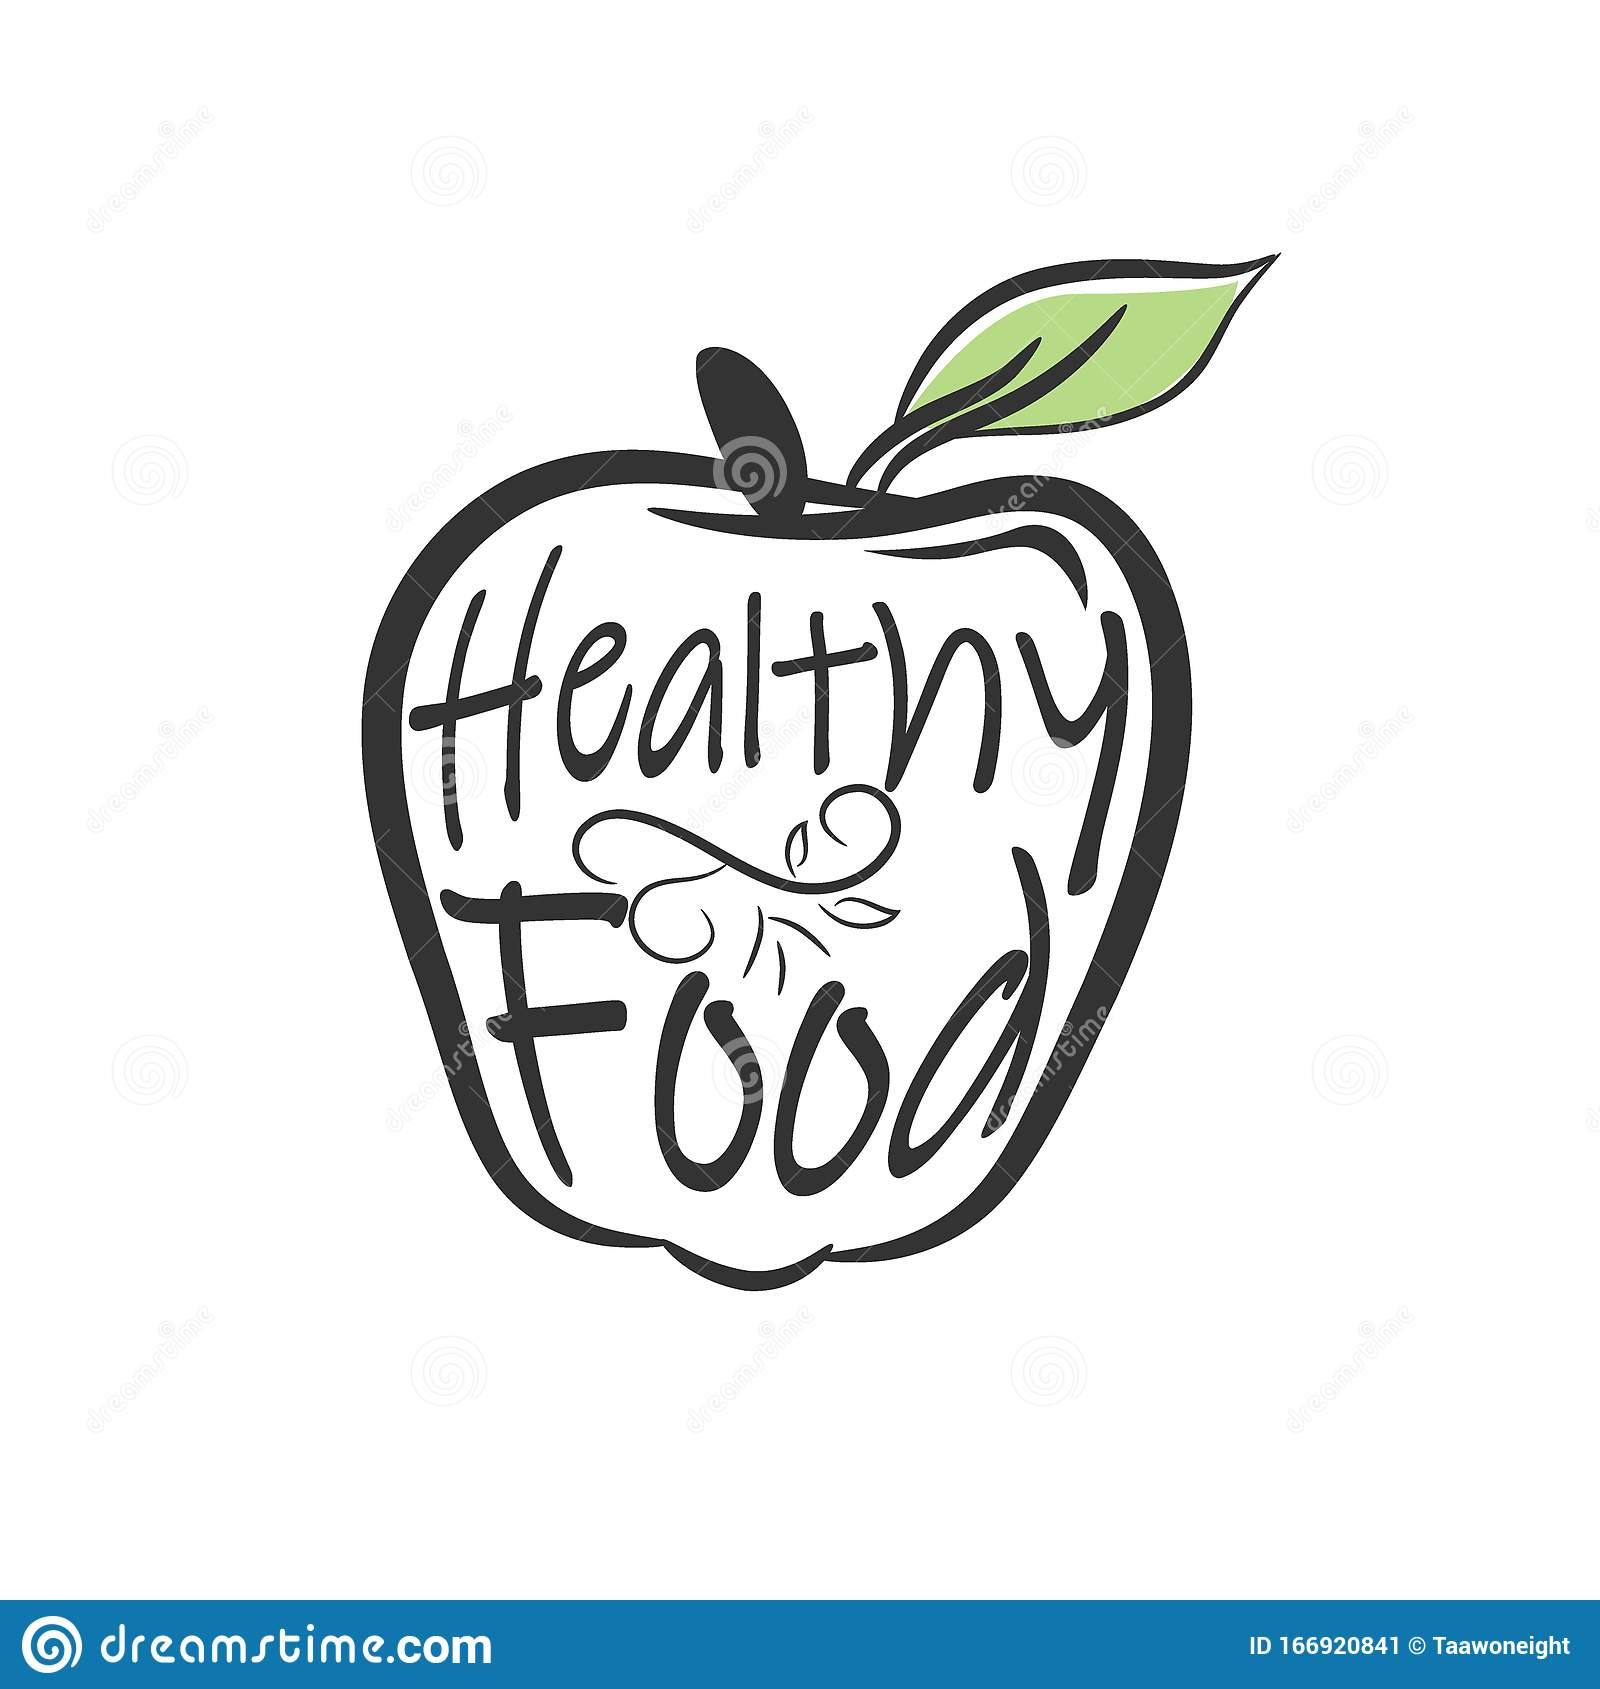 Vector Hand Drawn Healthy Food Illustration Vintage Style Retro Sketch Background Stock Illustration Illustration Of Background Female 166920841